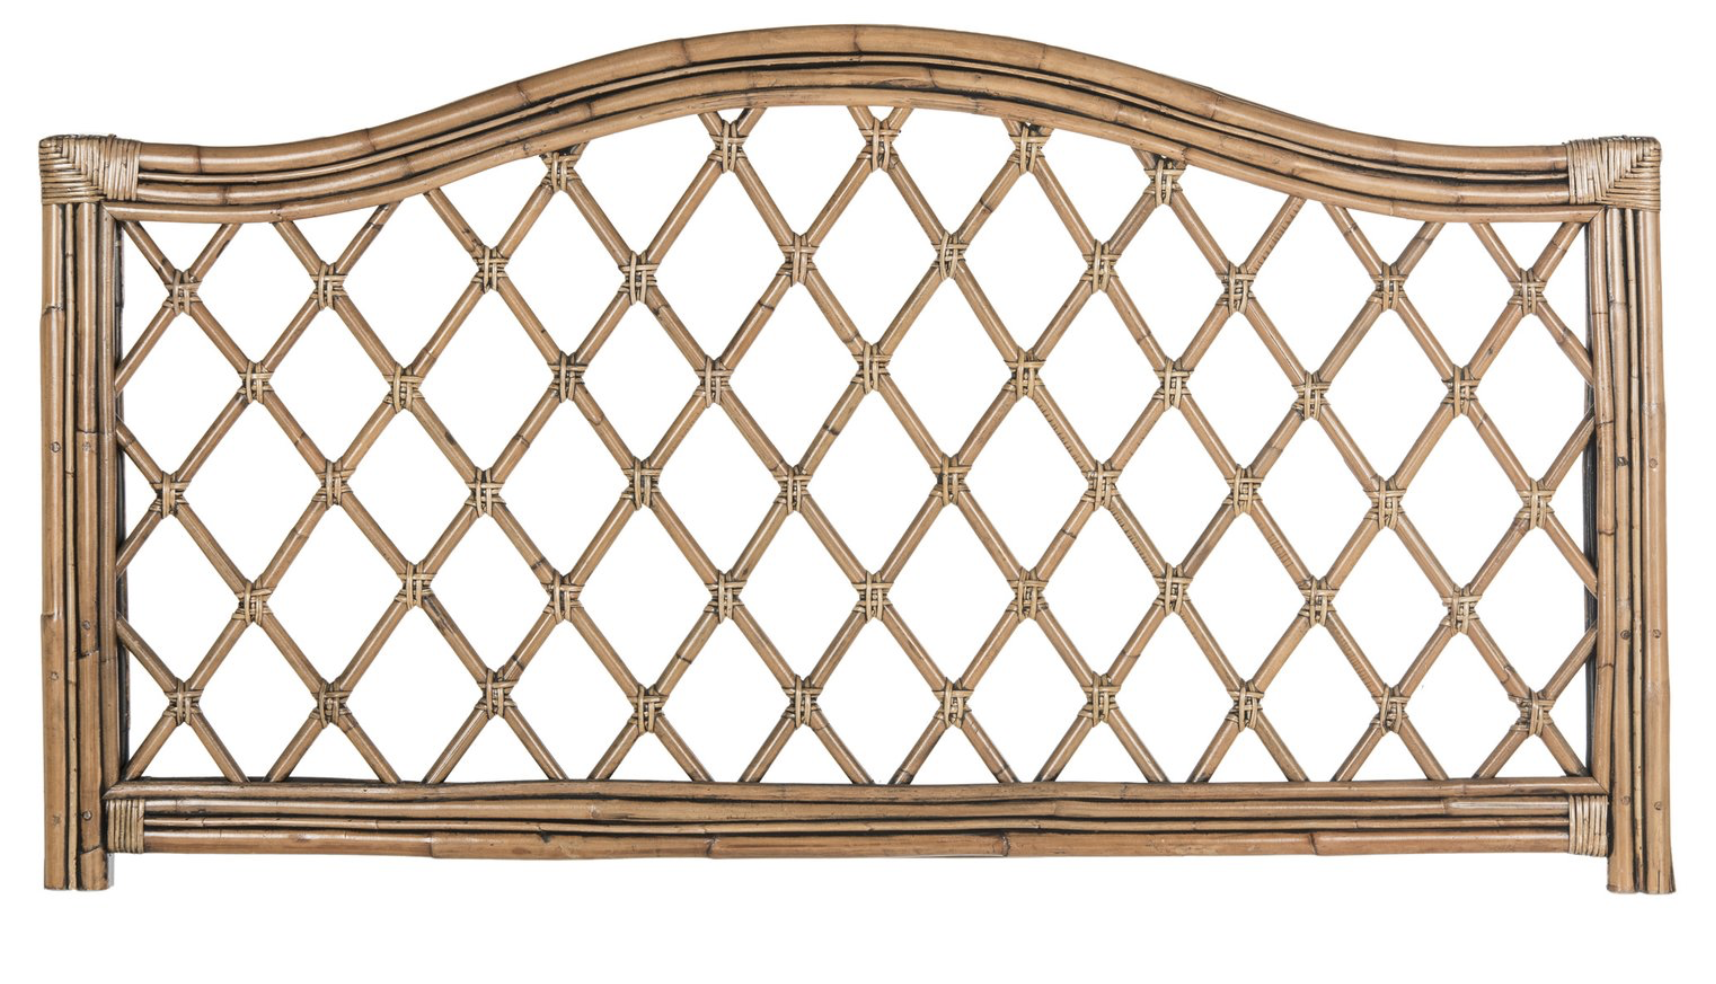 rattan headboard affordable Serena and lily style